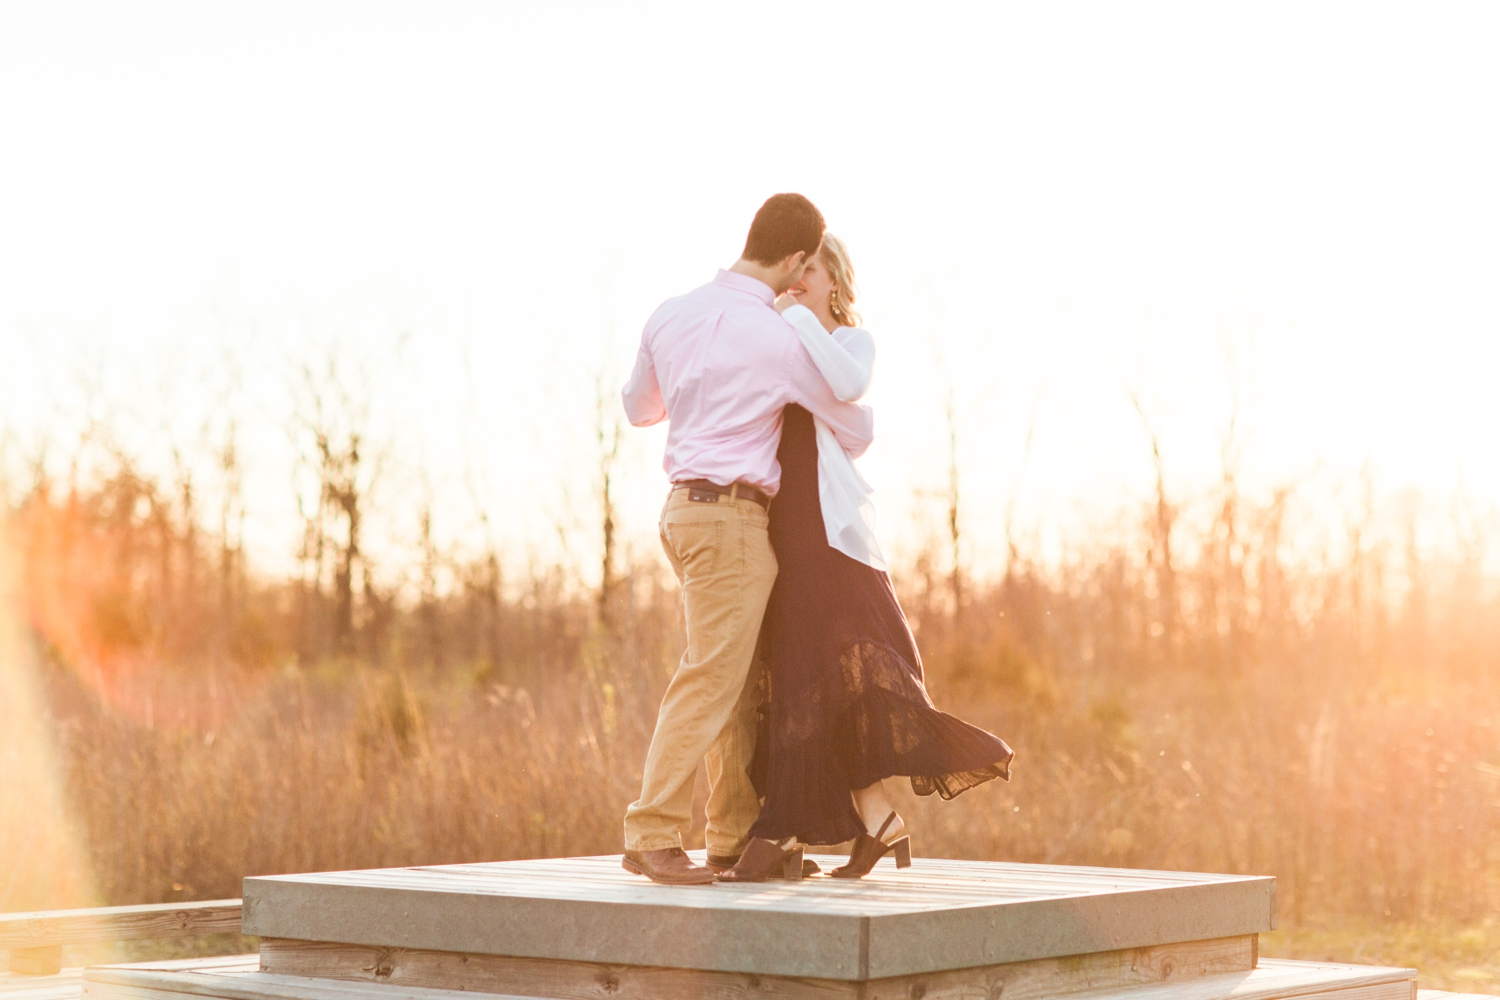 indianapolis_wedding_photographer_golden_hour_engagement_chloe_luka_photography_6135.jpg